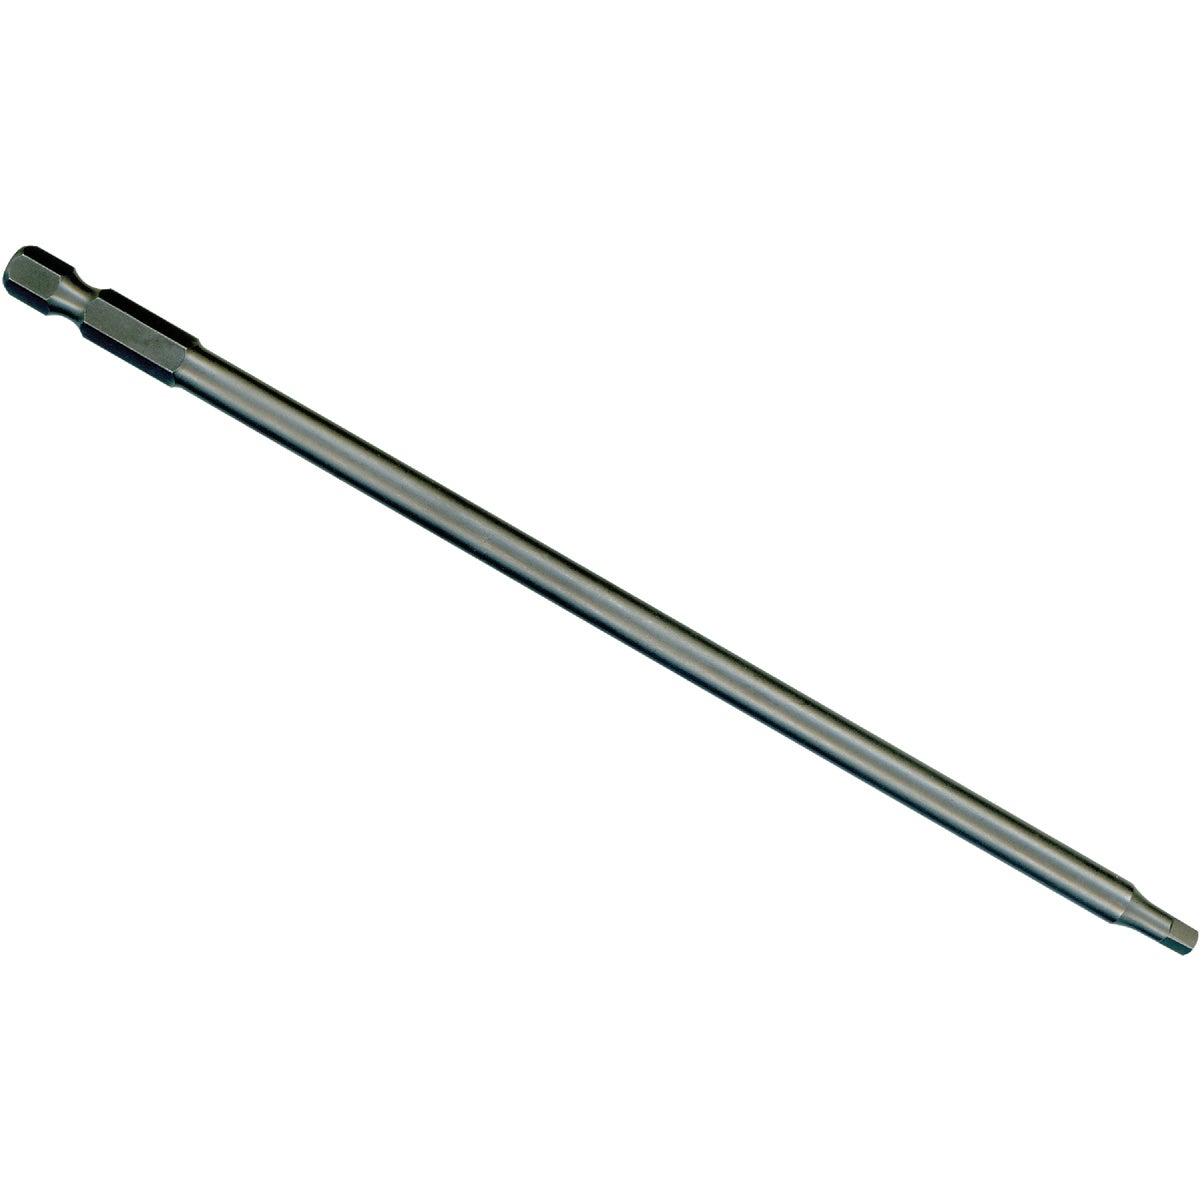 Senco DuraSpin DS212-18V, DS215-18V, DS232-AC, DS235-AC Replacement Power Screwdriver Bit, EA0298